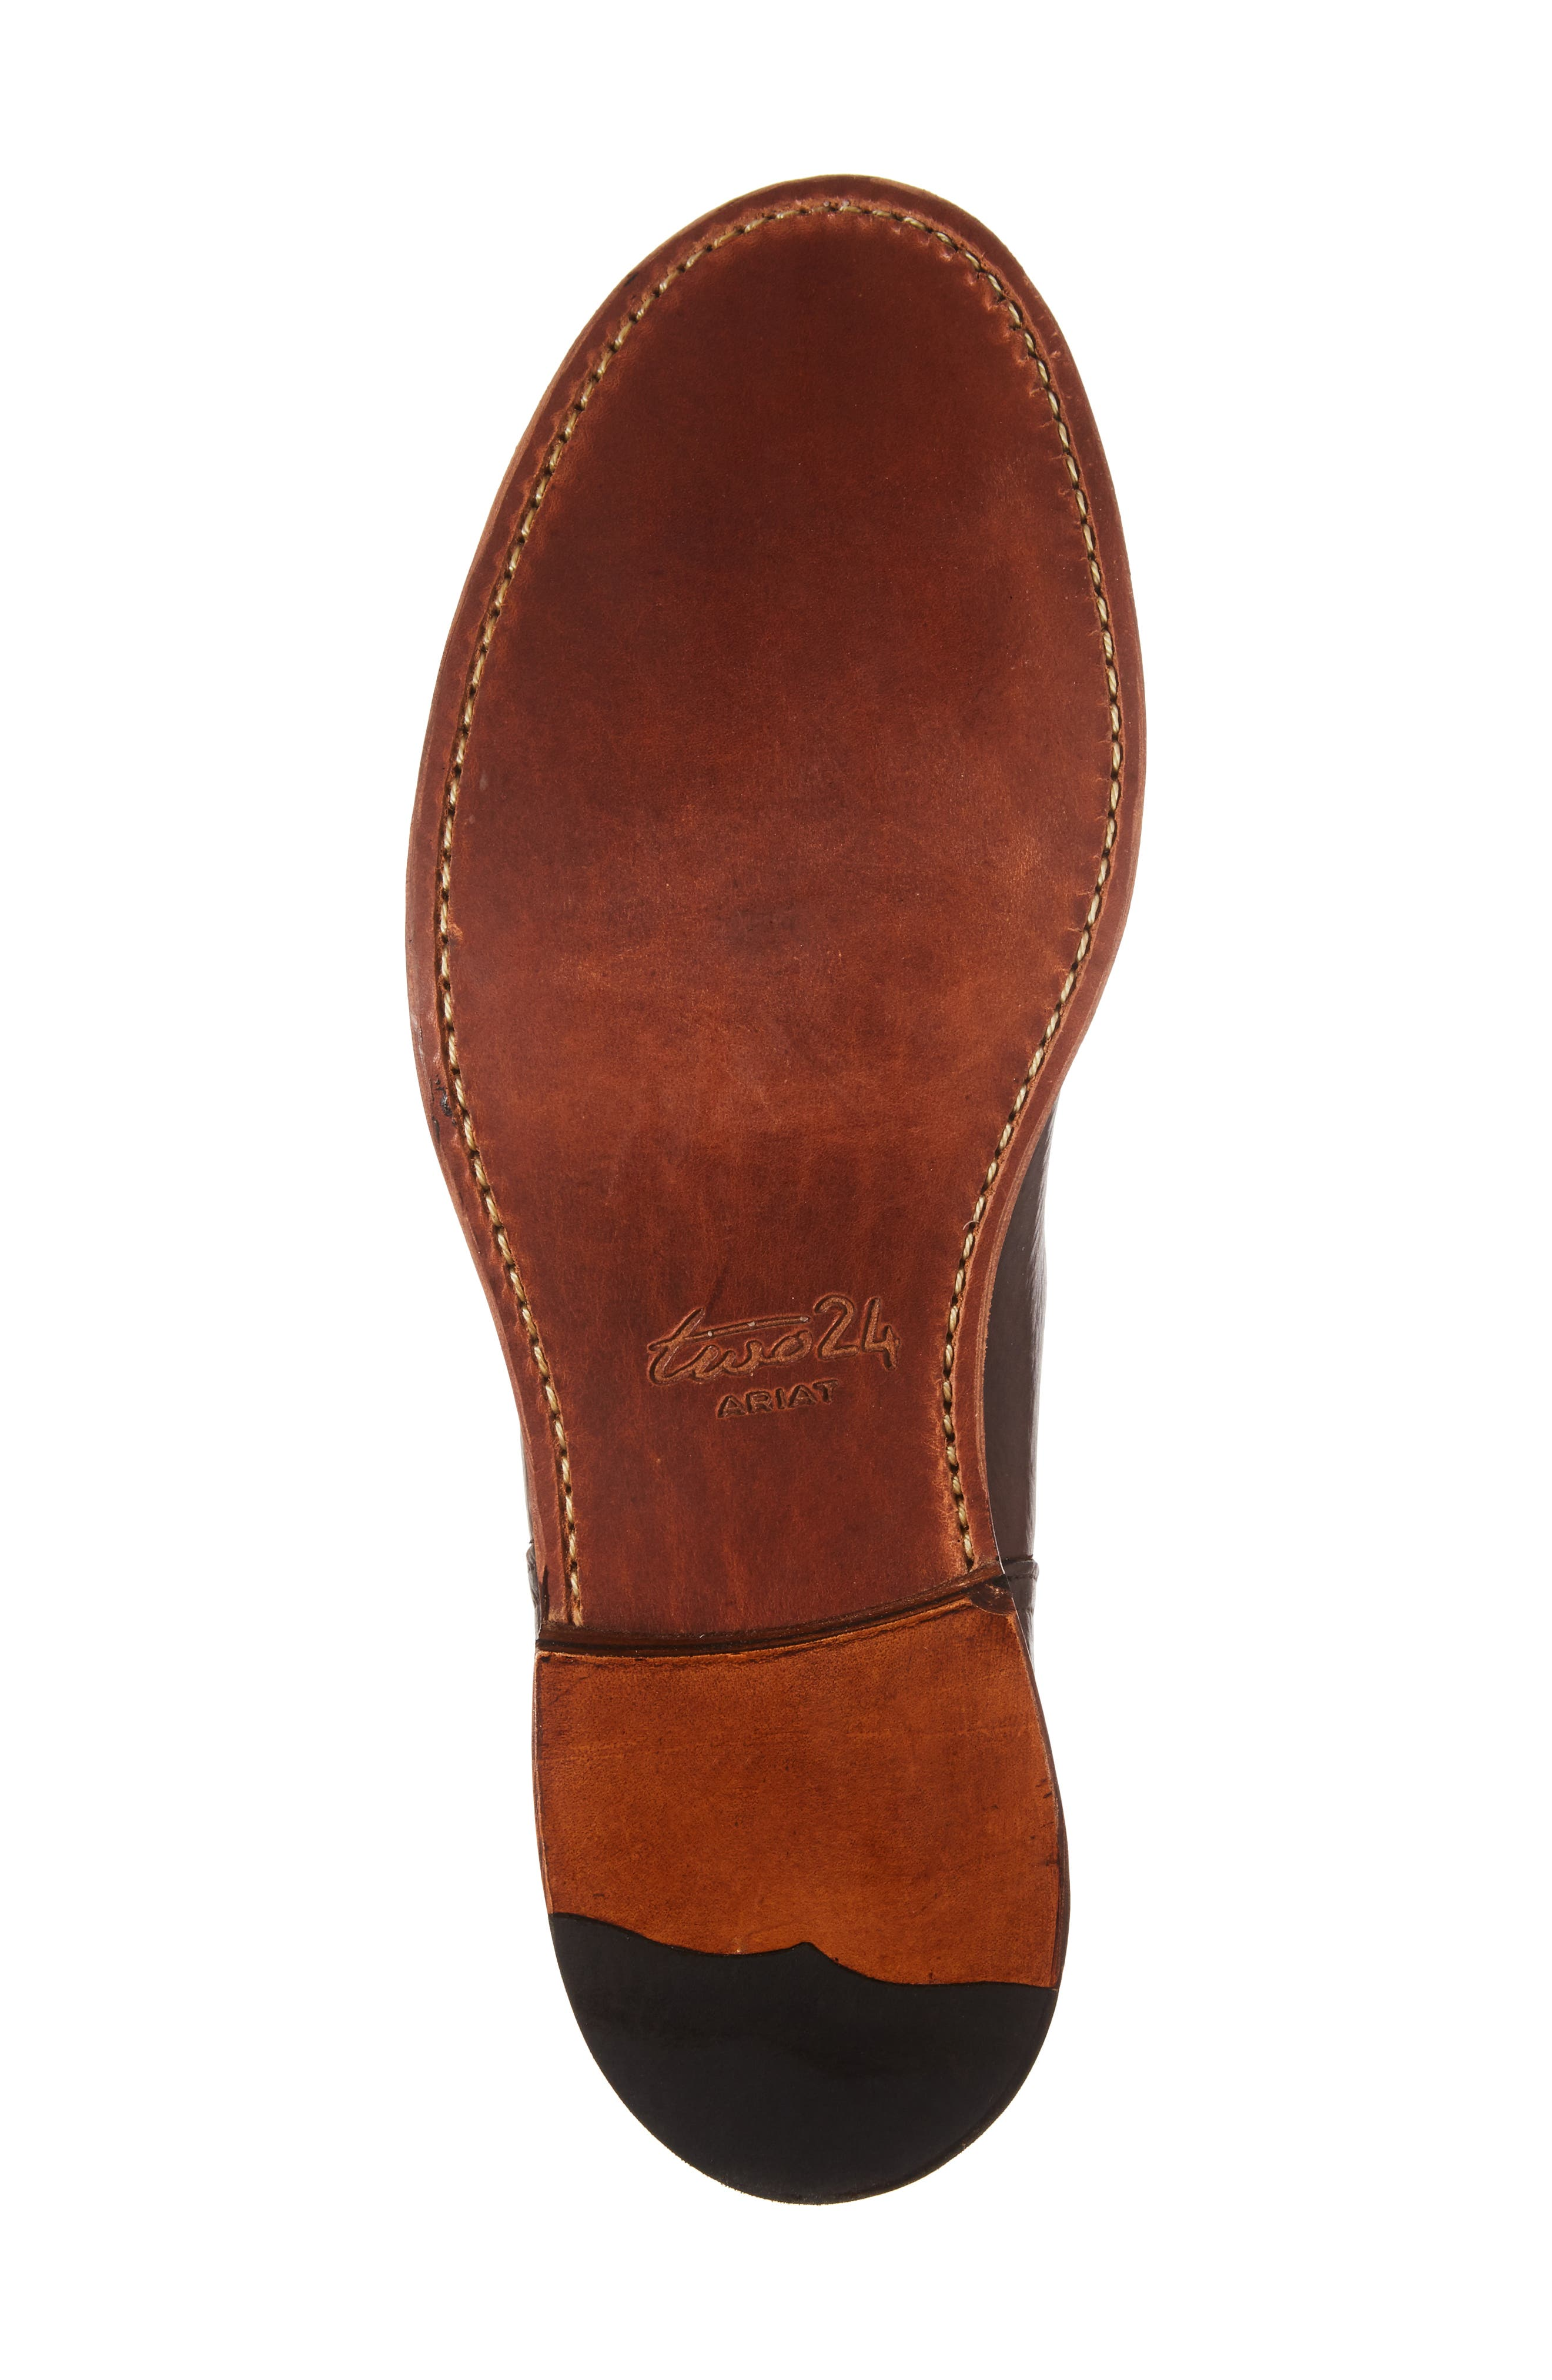 Ariat Highlands Cap Toe Boot,                             Alternate thumbnail 6, color,                             Whiskey Bourbon Leather